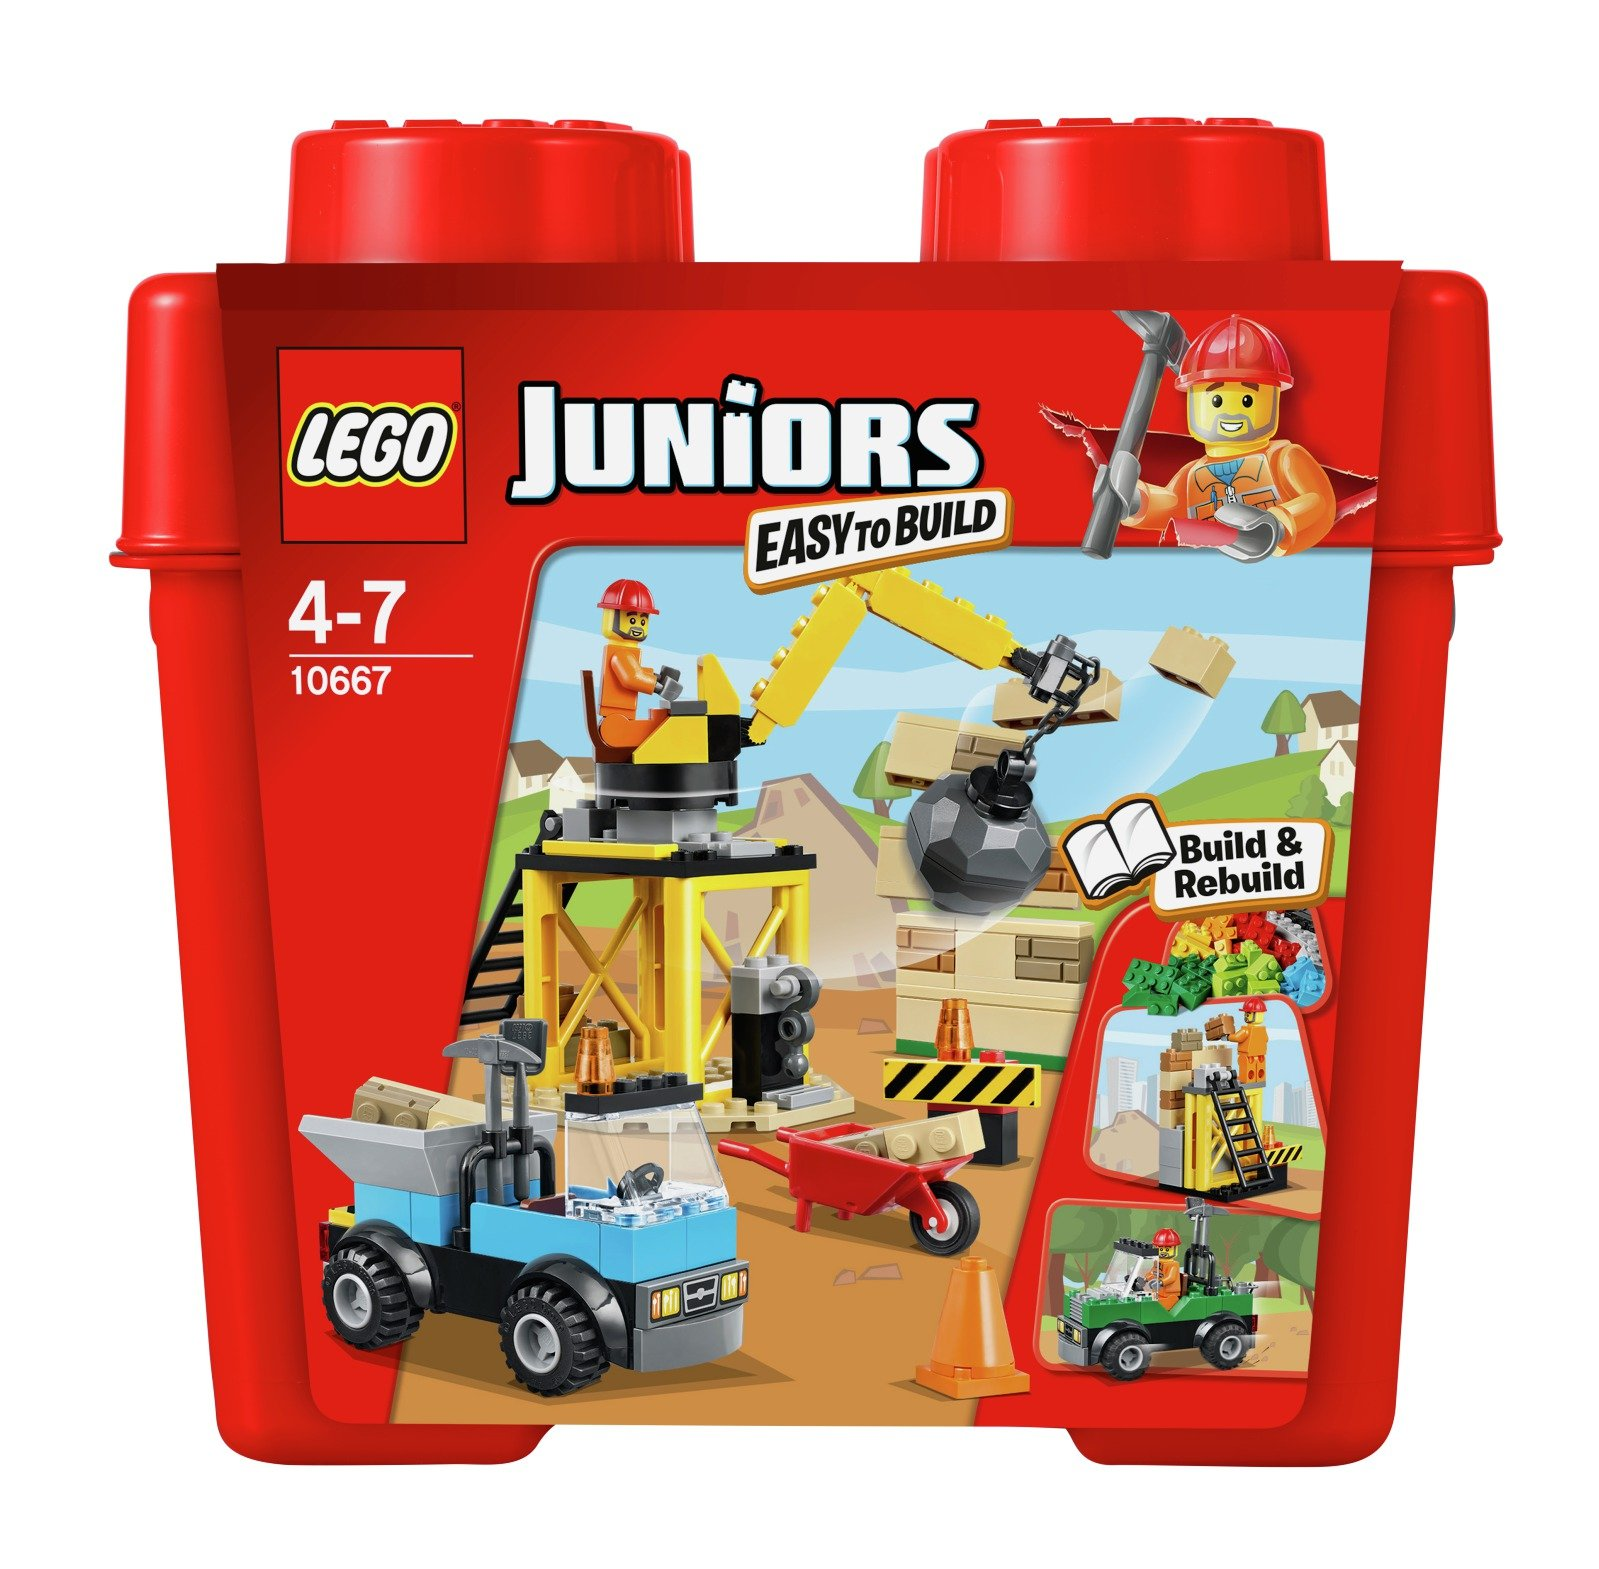 LEGO Juniors Construction - 10667.